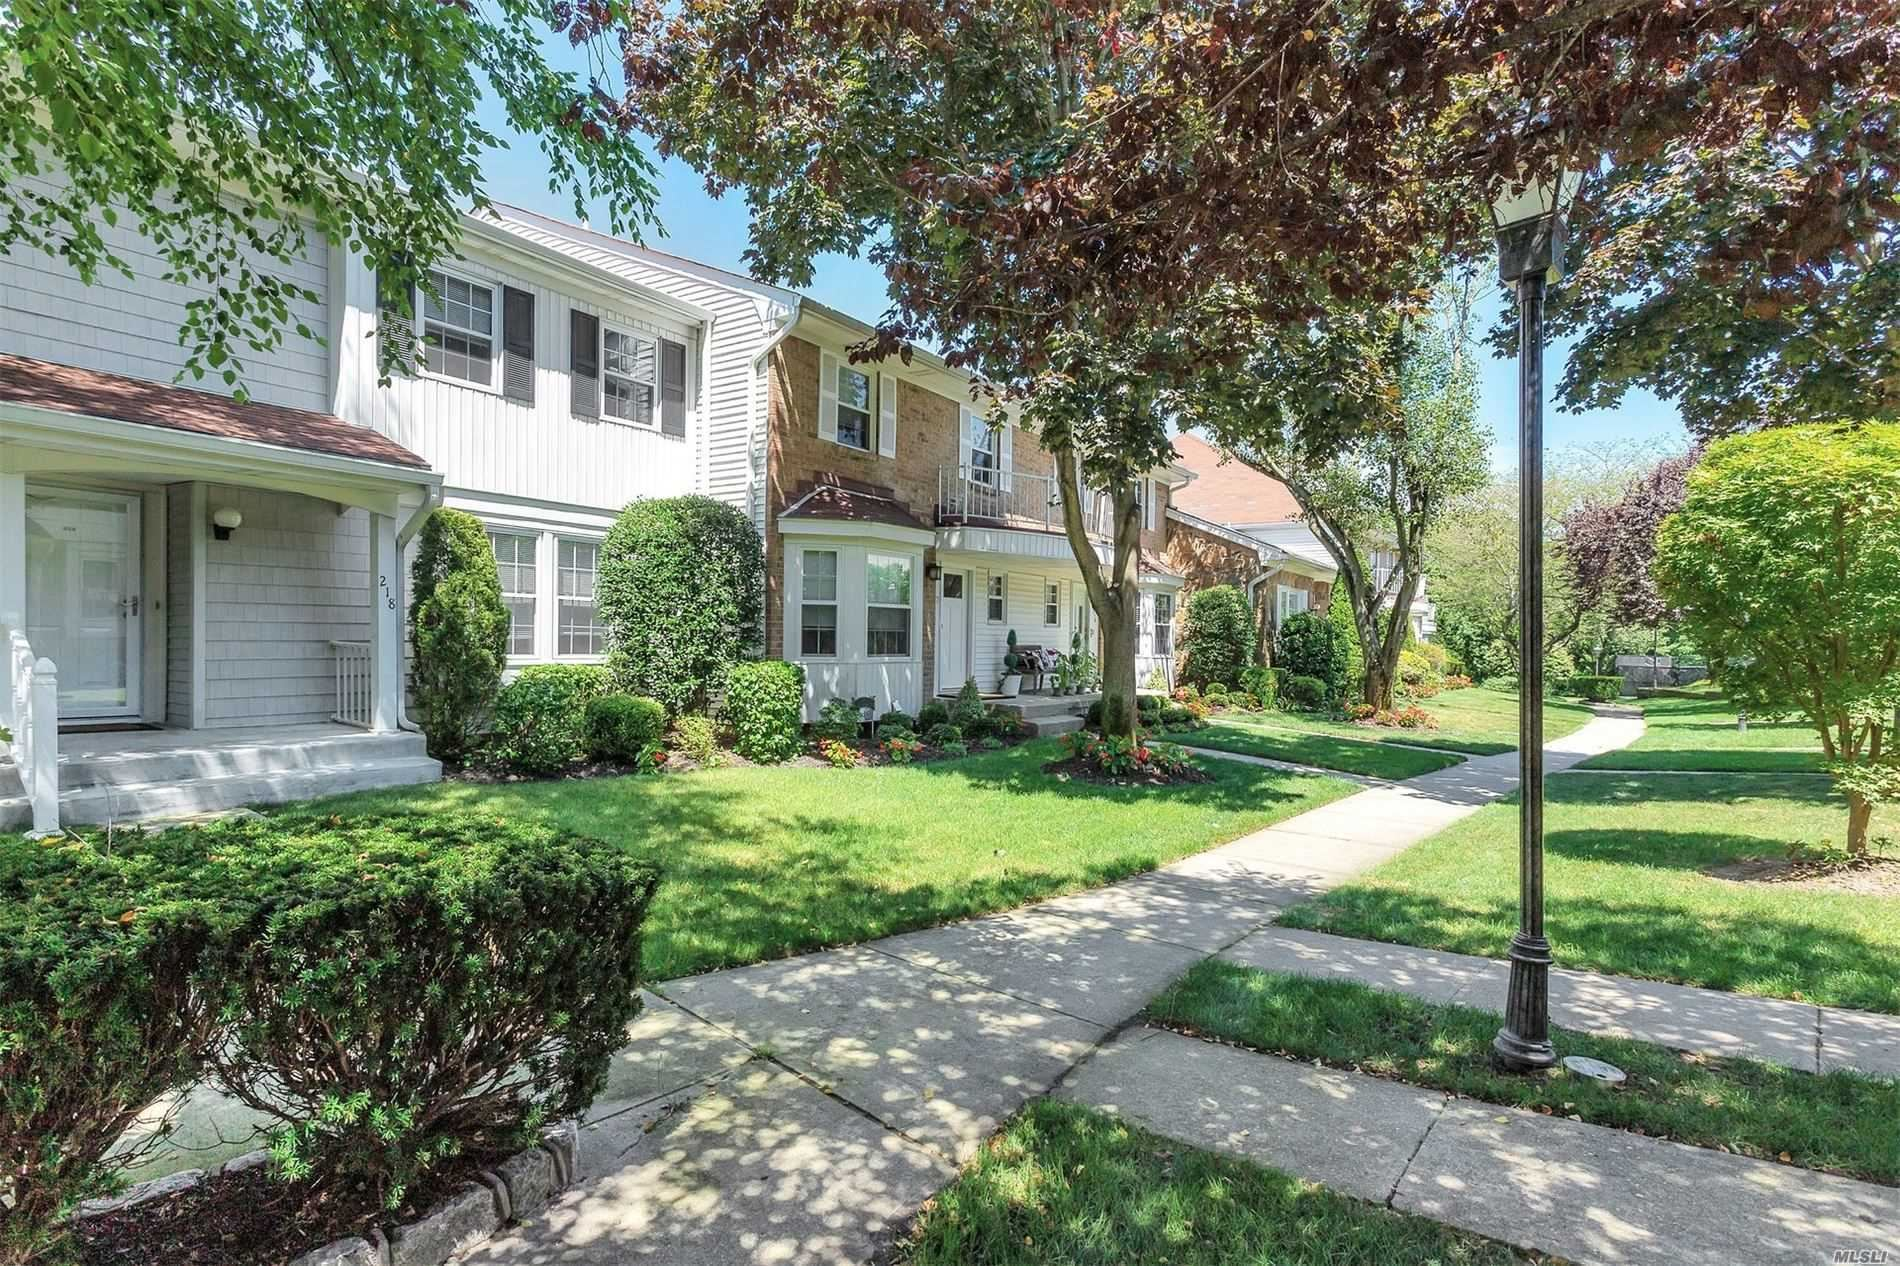 218 Summit Way, Syosset, NY 11791 - MLS#: 3218050